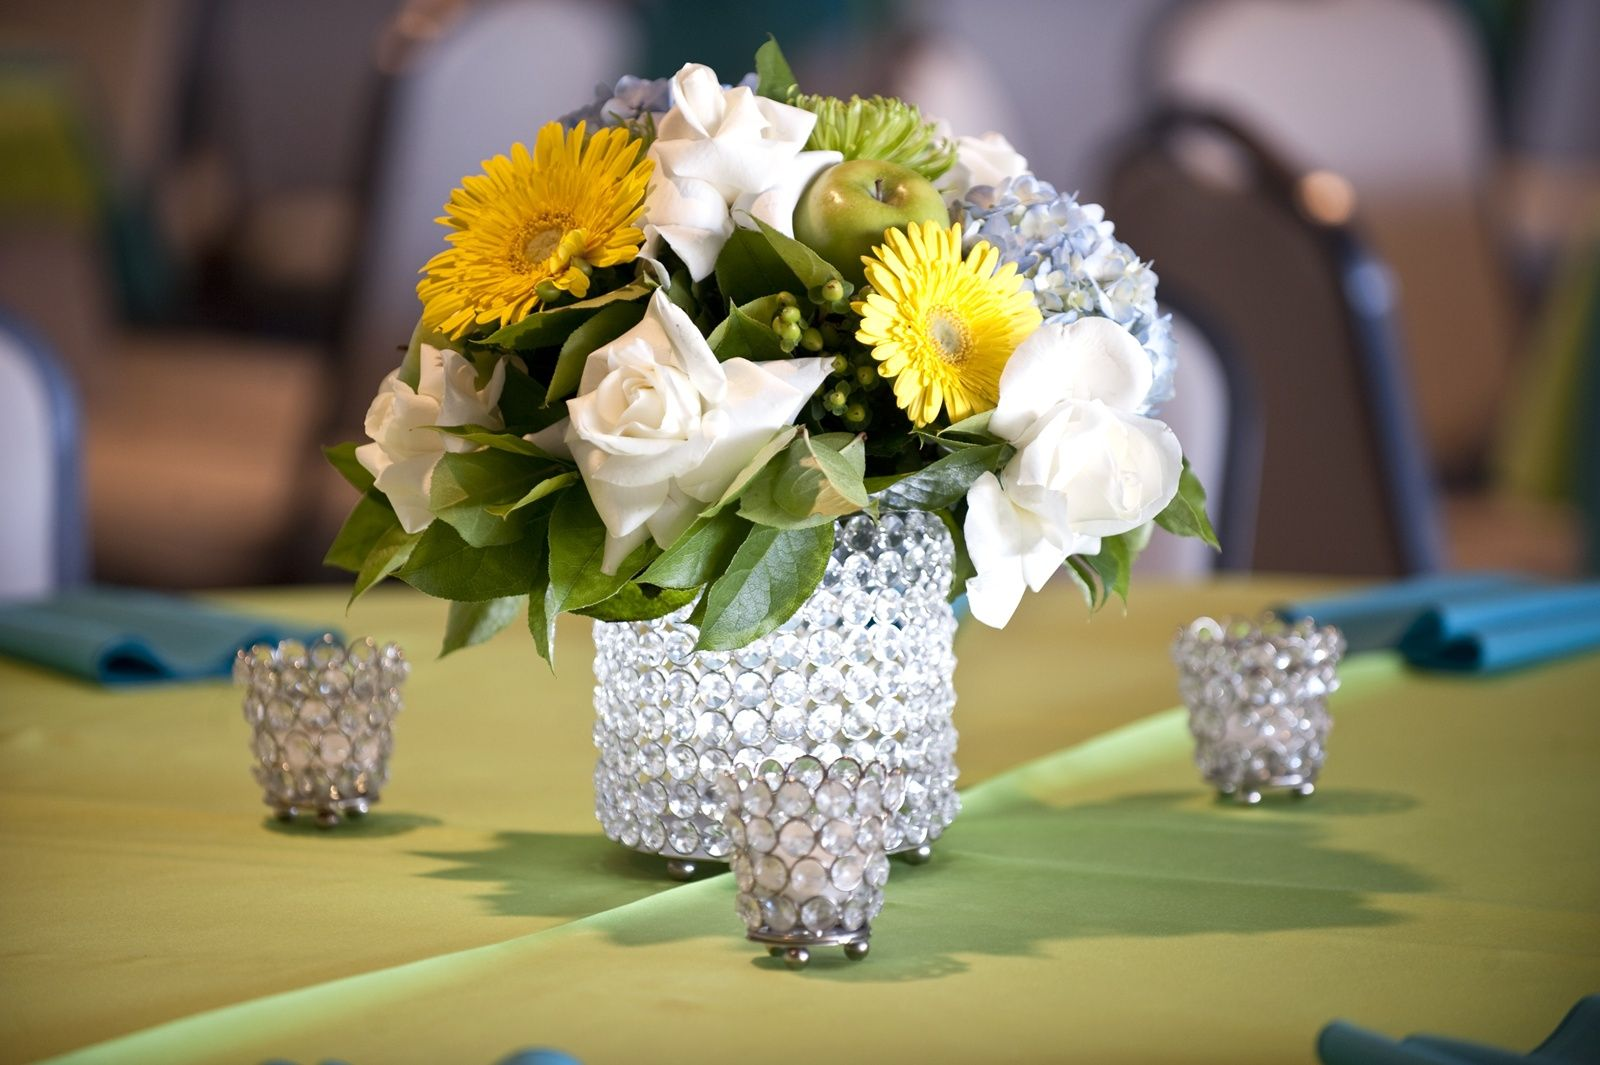 Fun centerpiece ideas for your professional event. Flowers always look nice no matter the occasion.